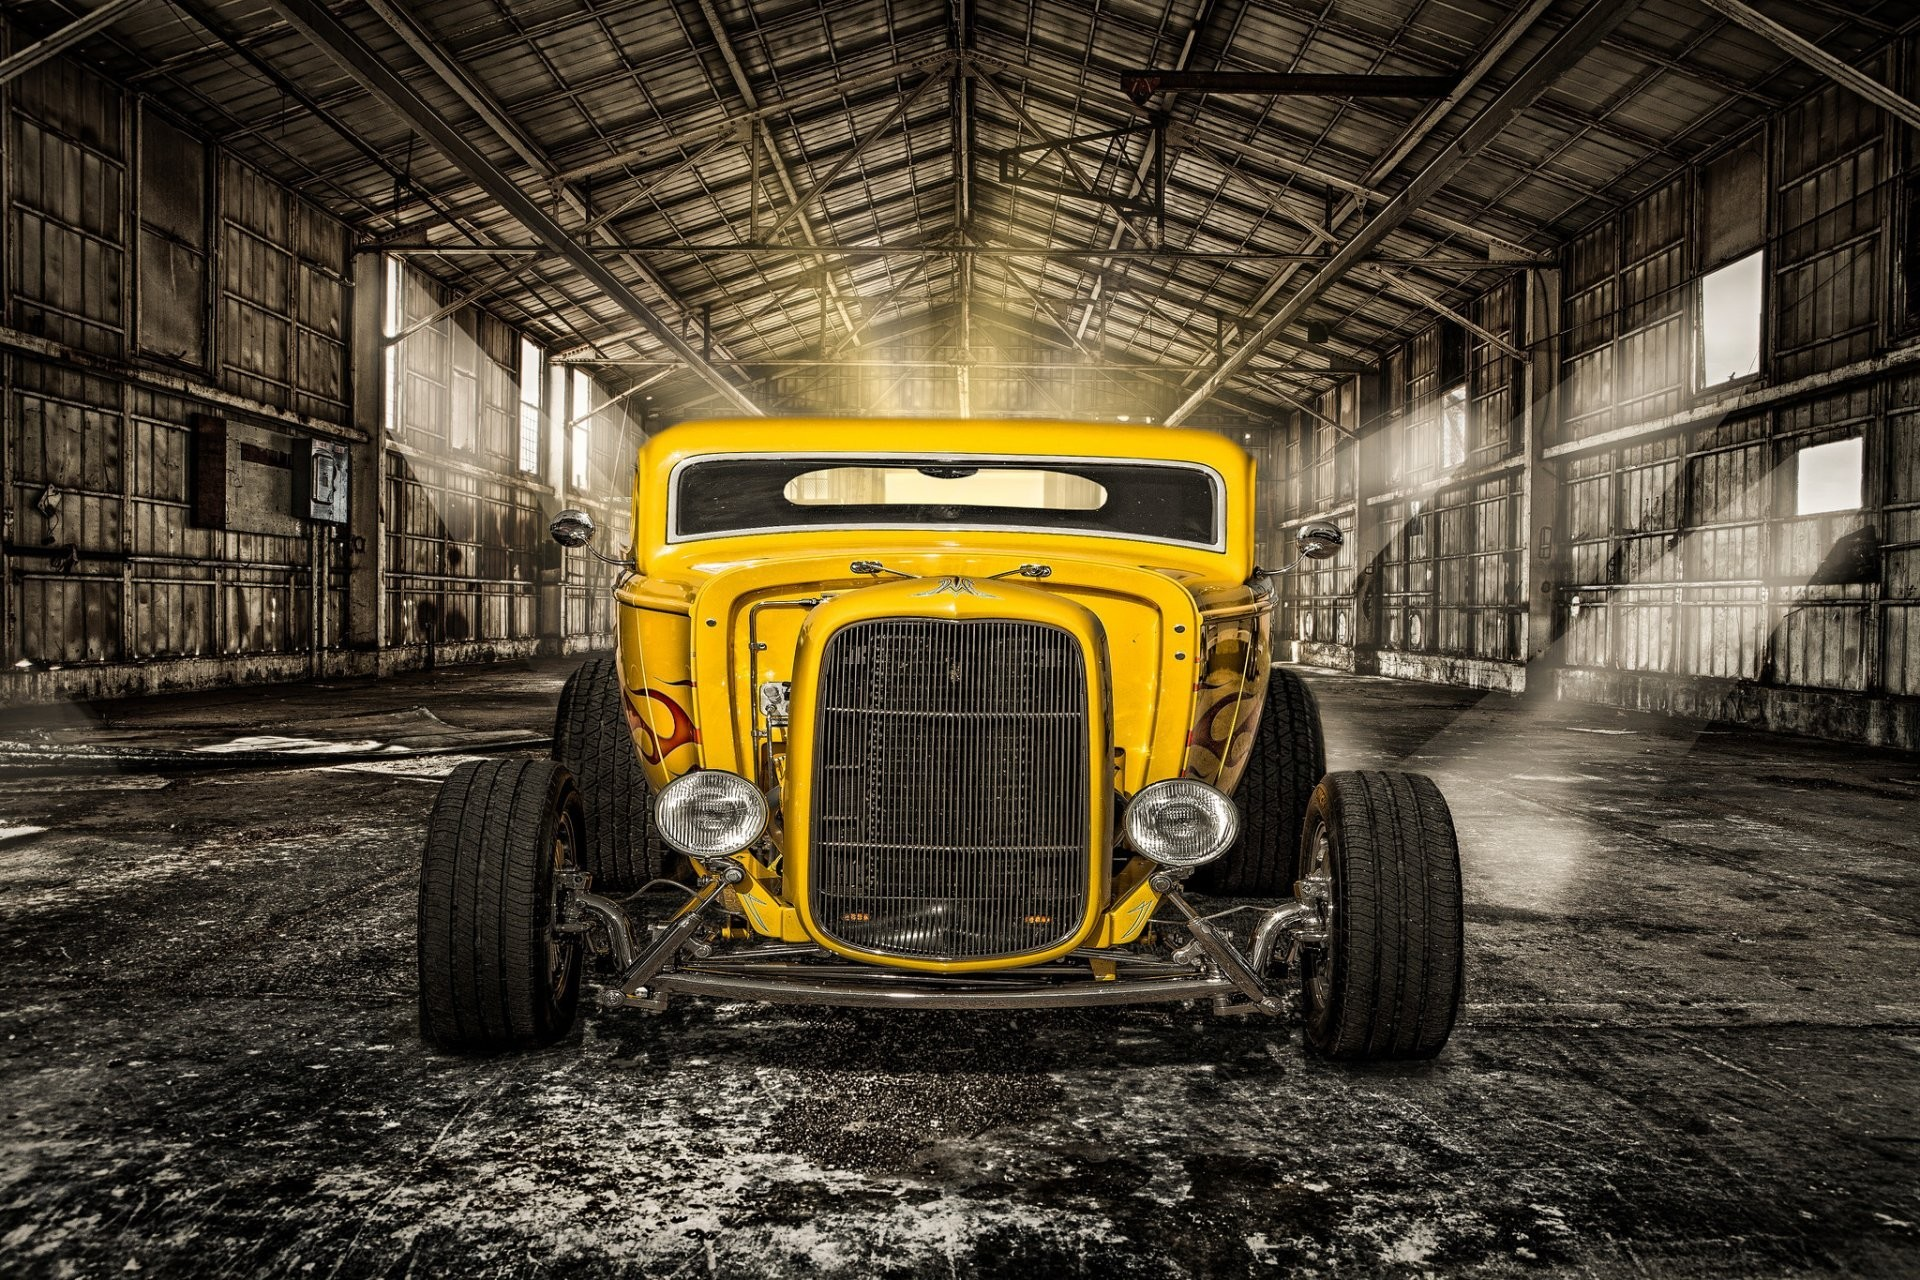 1920x1280 hot-rod classic car yellow classic retro front light hangar